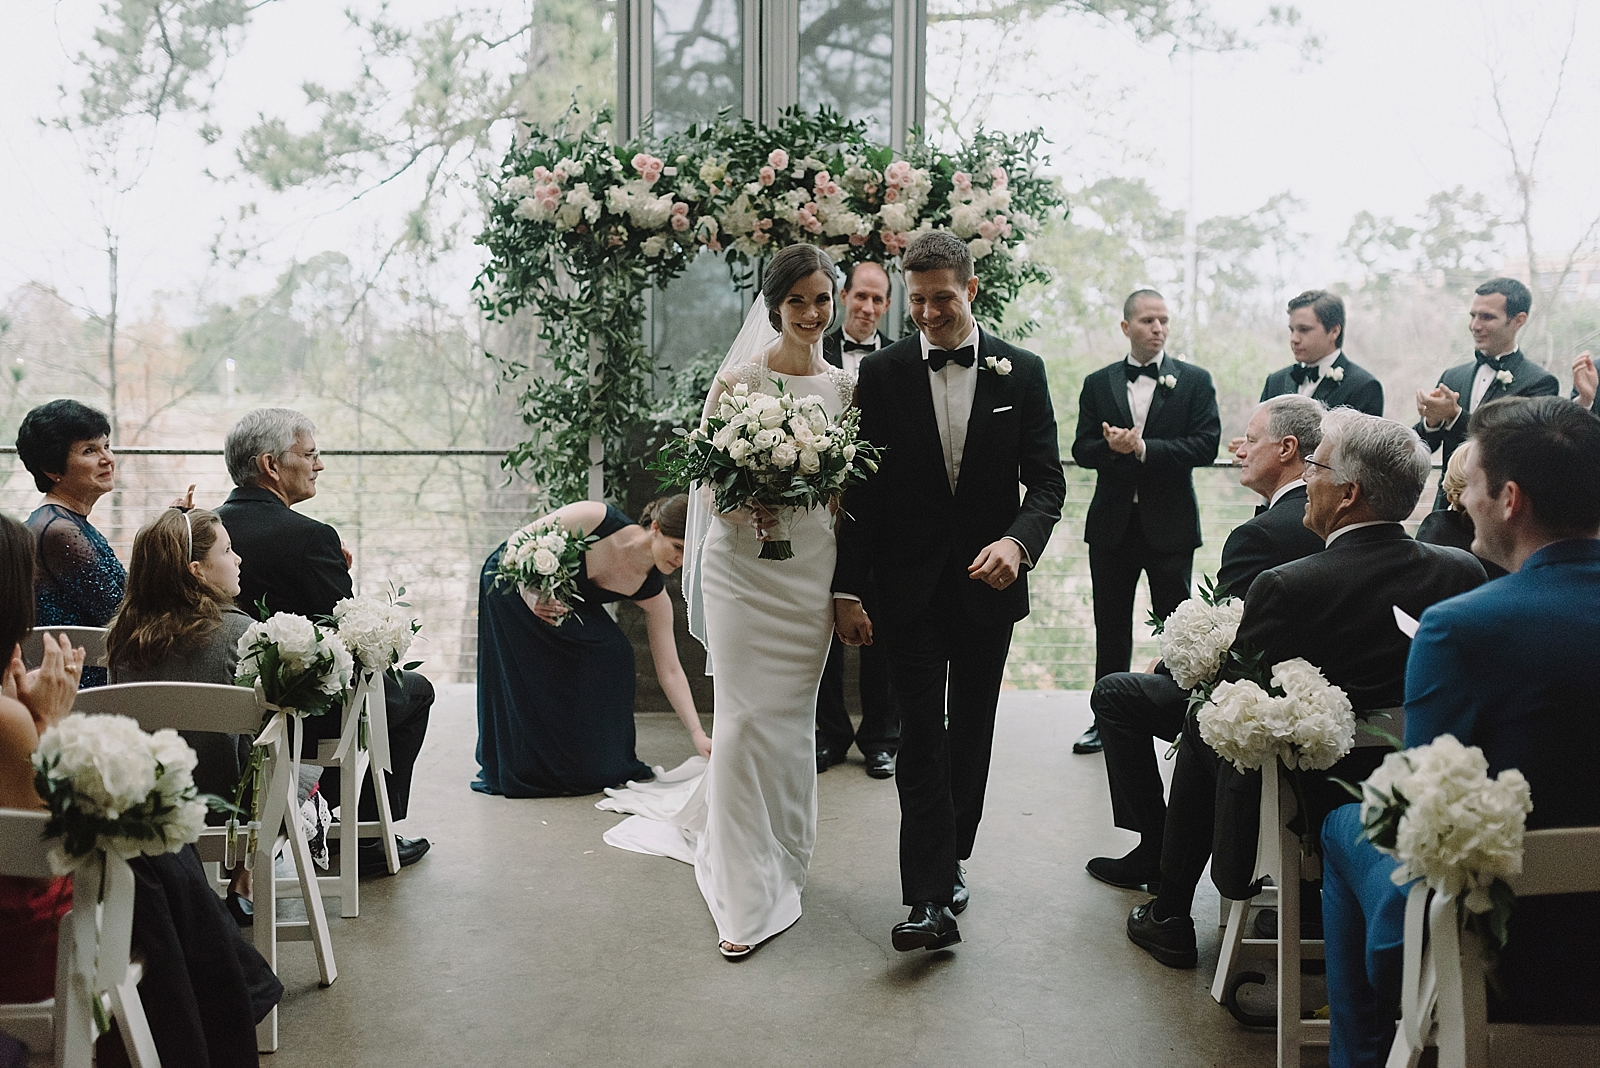 Bride and groom's wedding recessional on the terrace of the Dunlavy